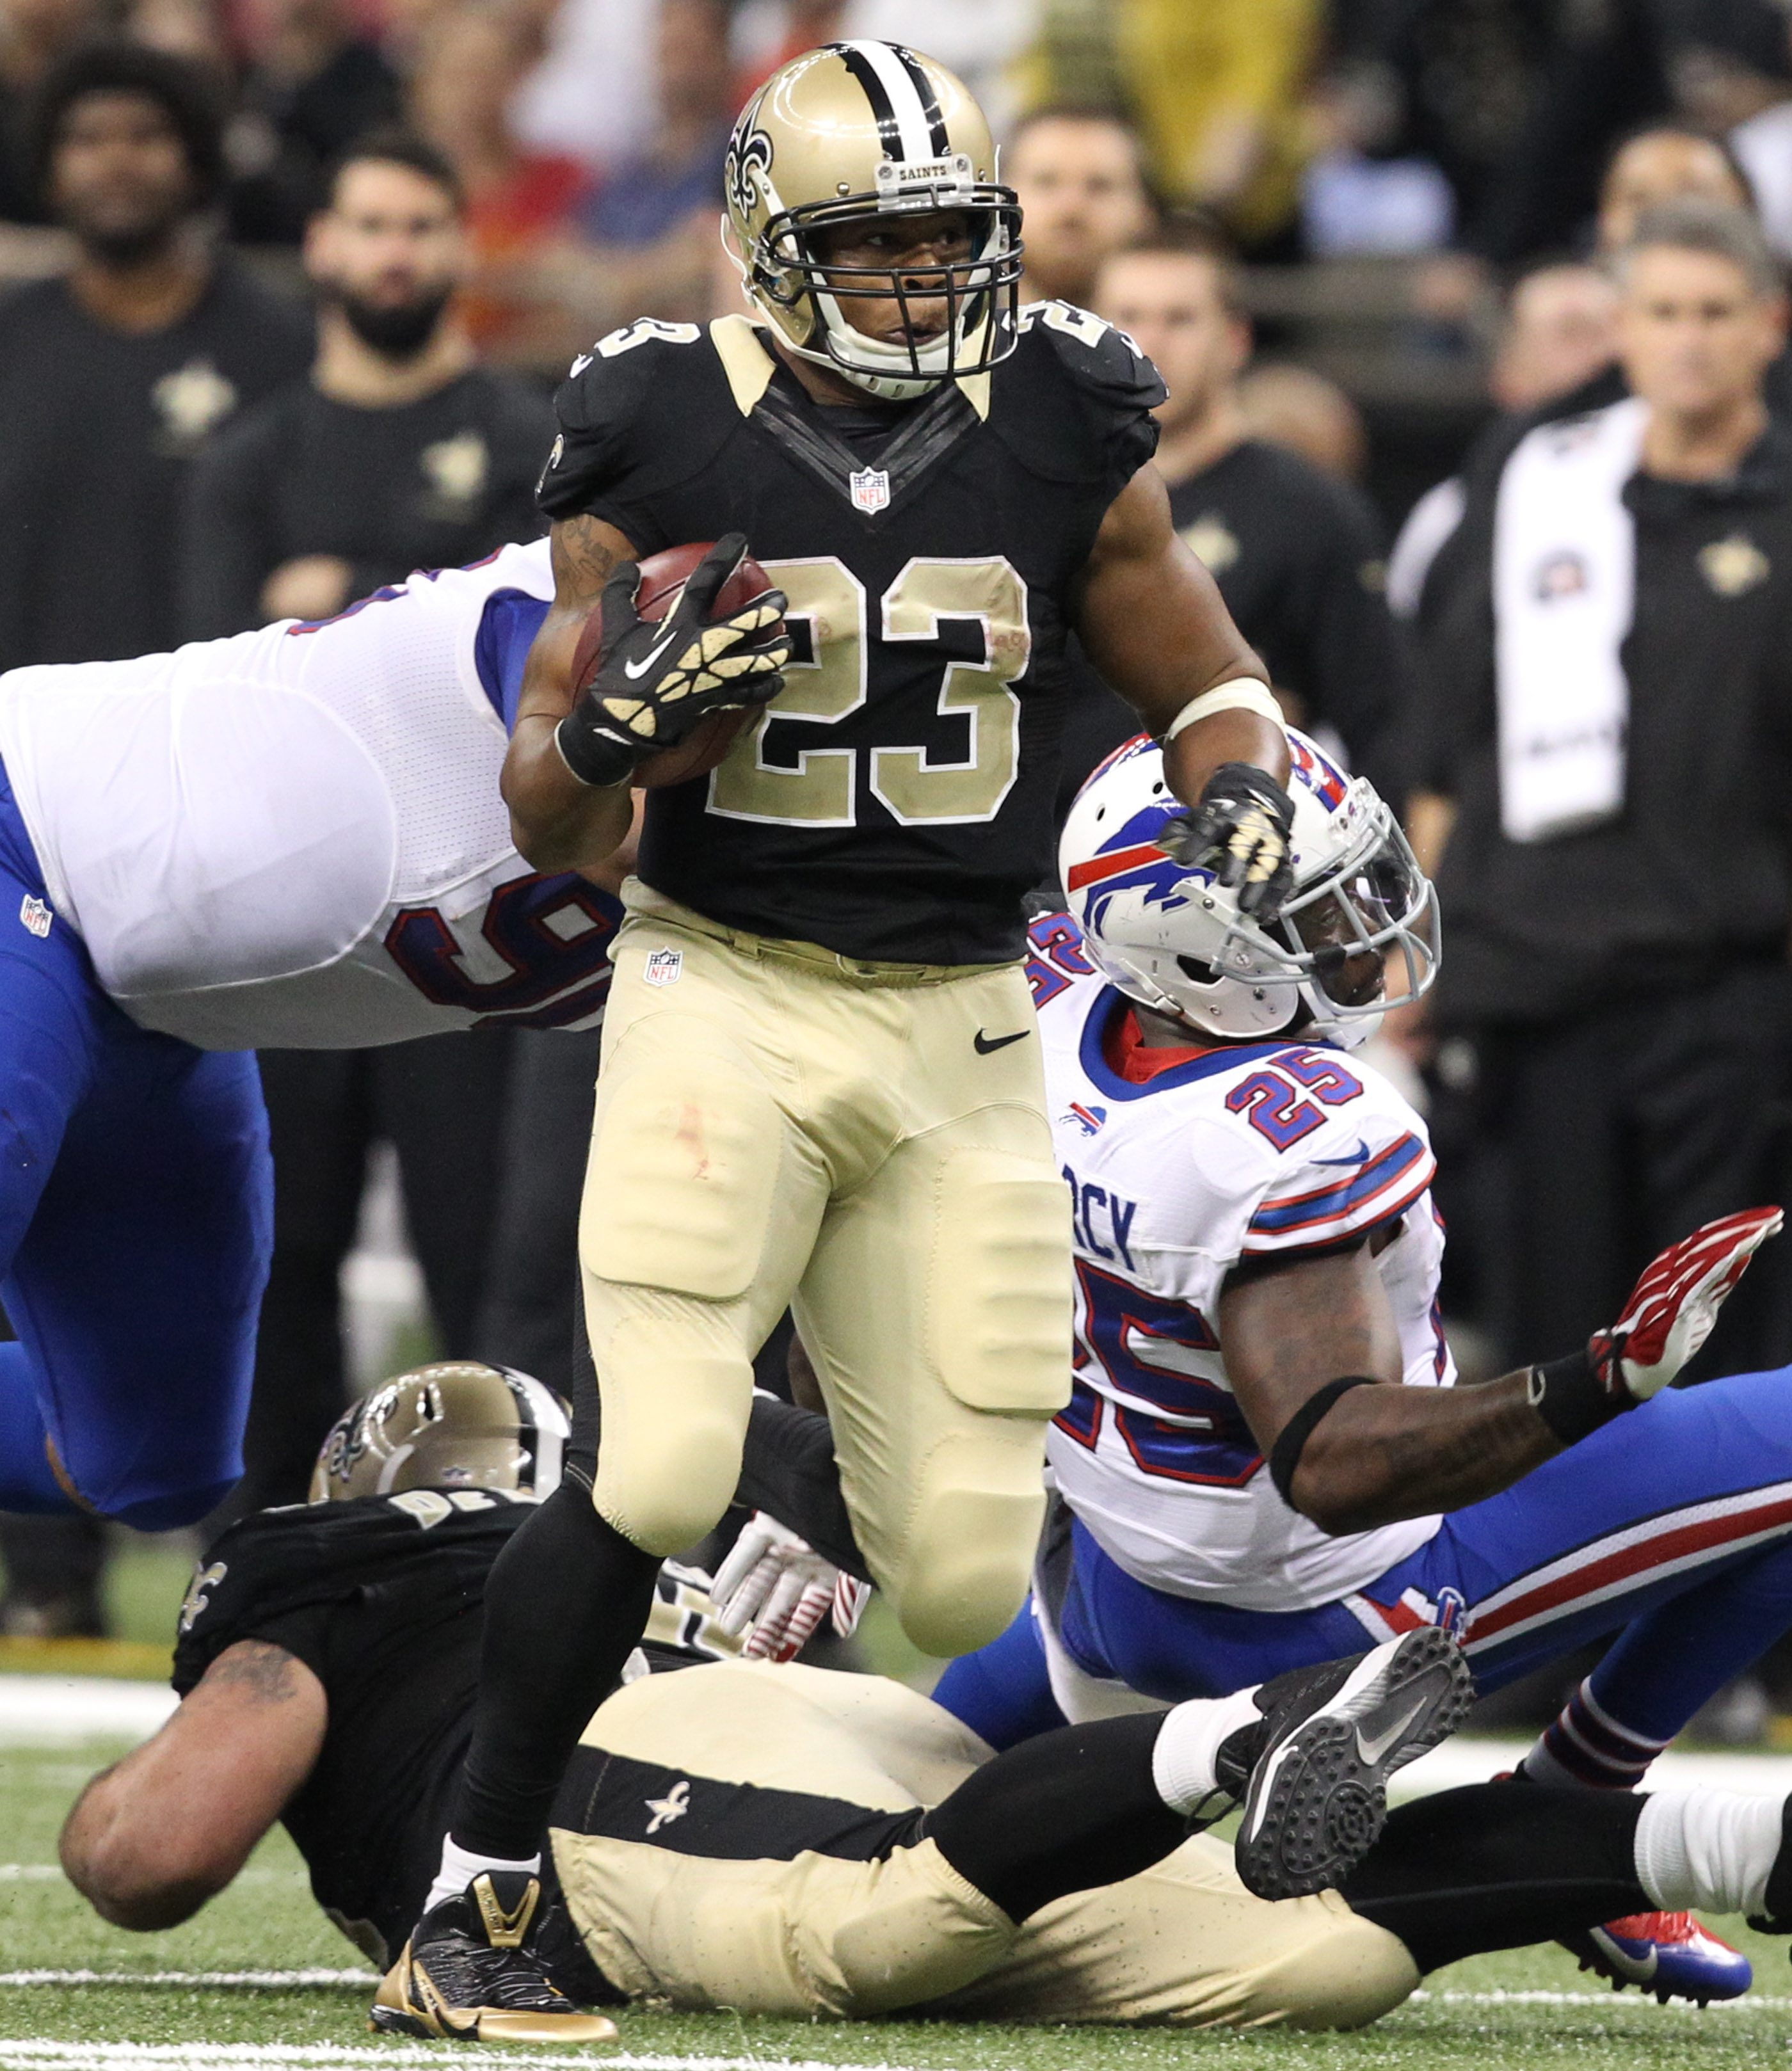 New Orleans running back Pierre Thomas  runs for a first down after getting past Buffalo strong safety Da'Norris Searcy (25) in the second quarter.